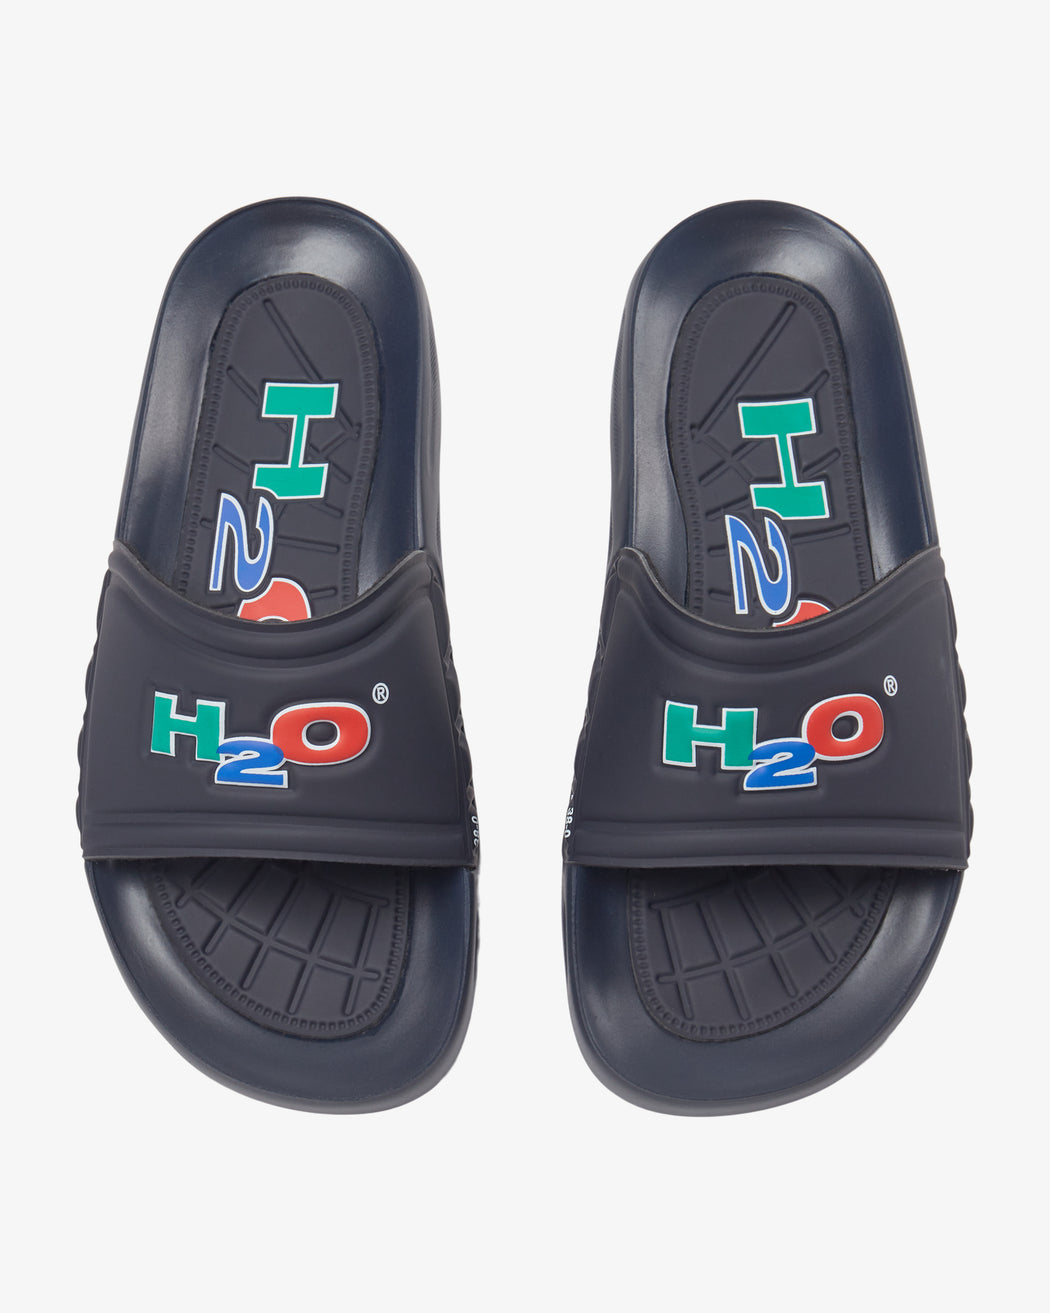 H2O Shoes/Swim/Accessories Badesandal Sandal 2500 Navy